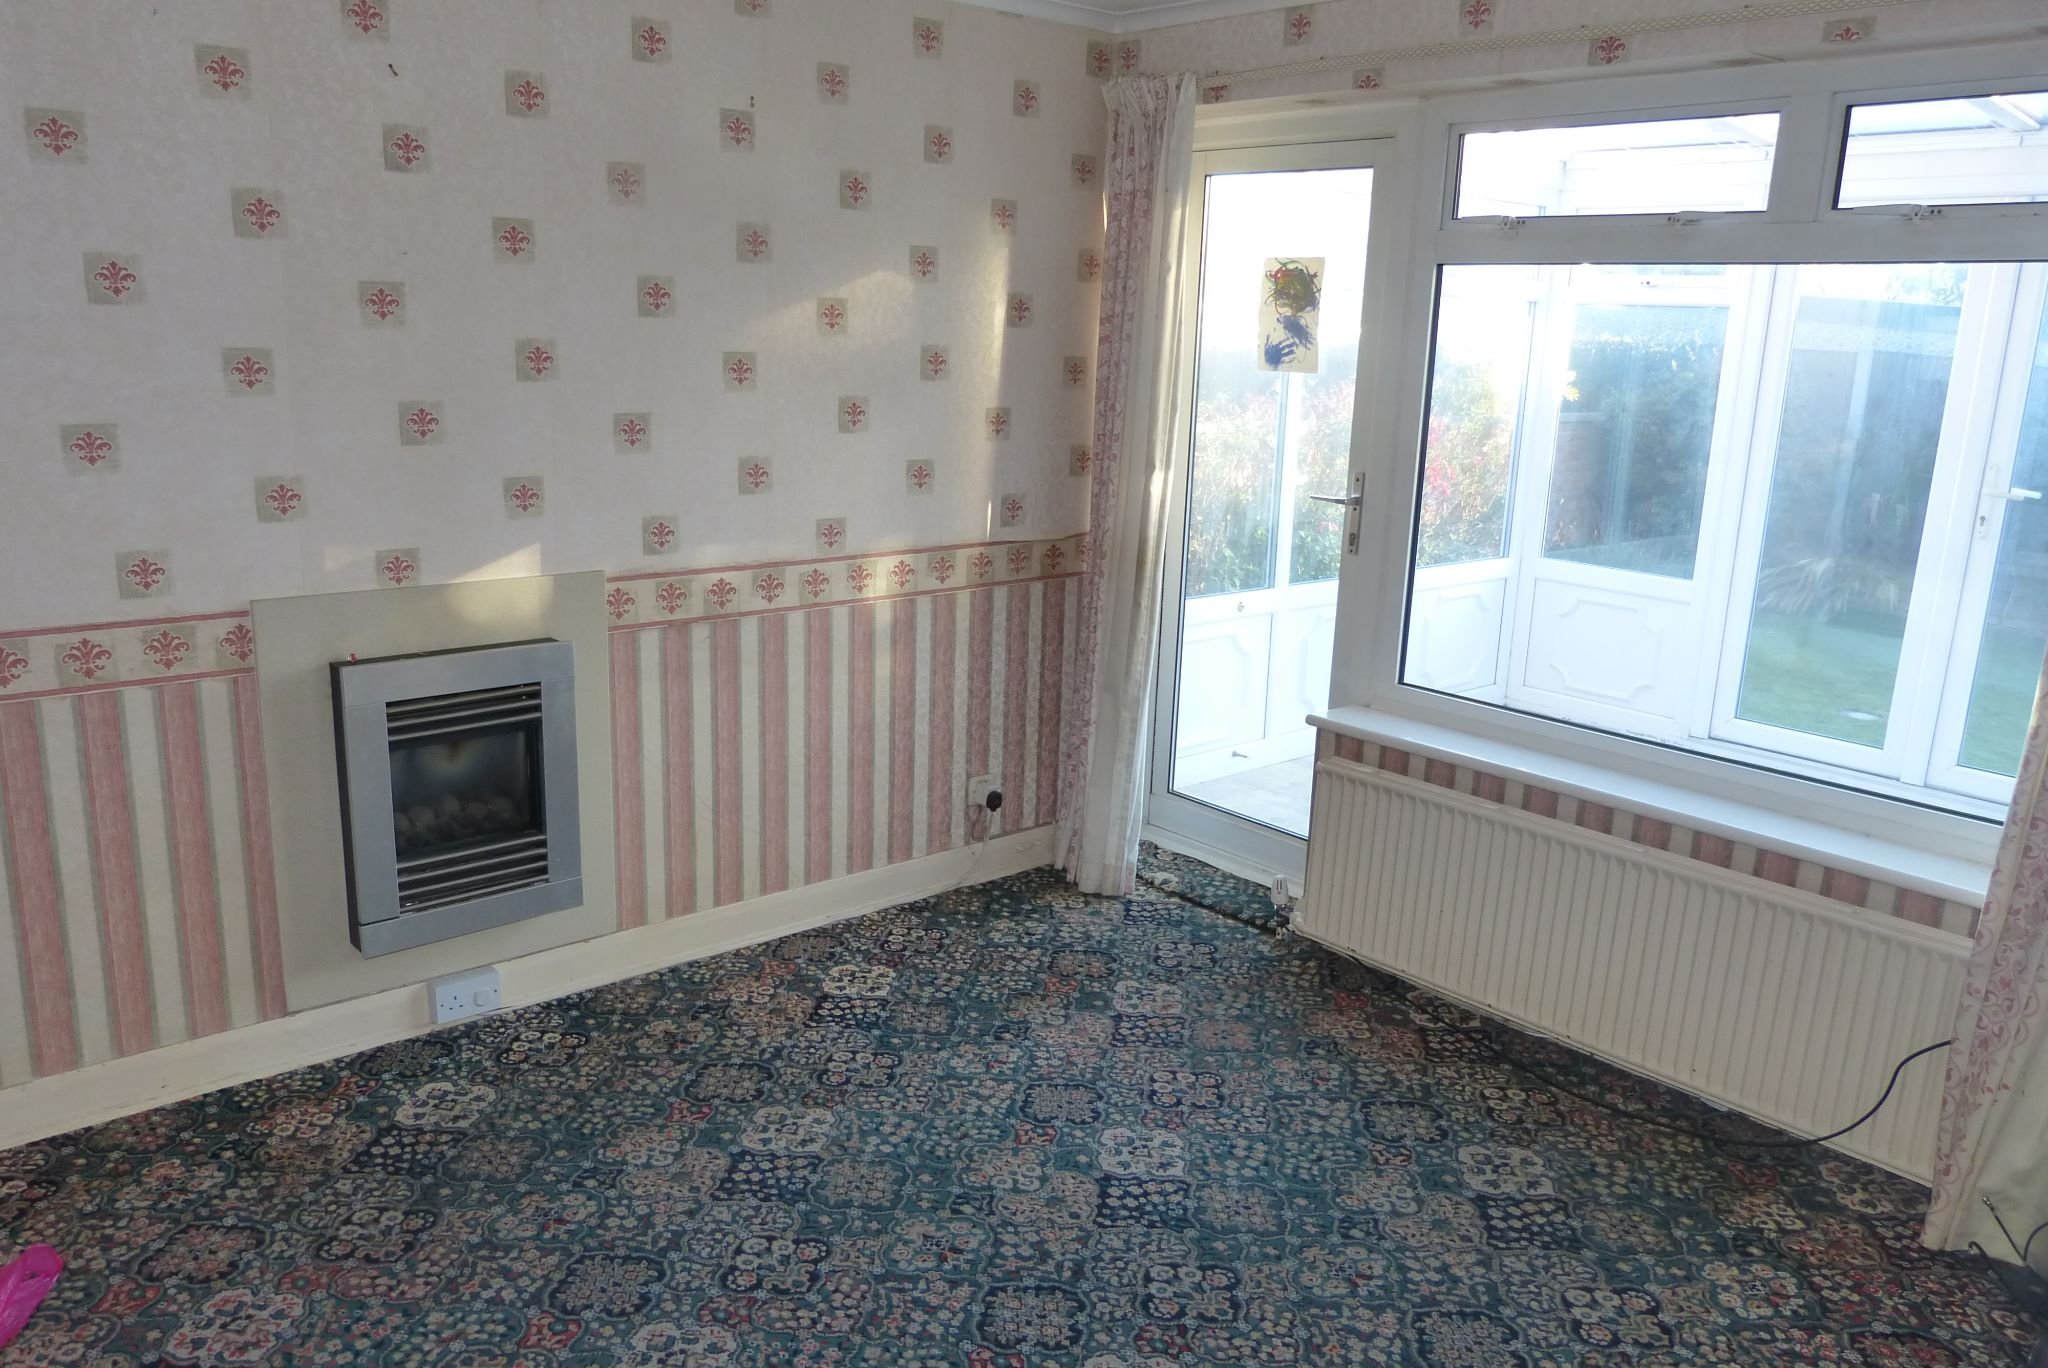 3 bedroom detached house SSTC in Abergele - Photograph 3